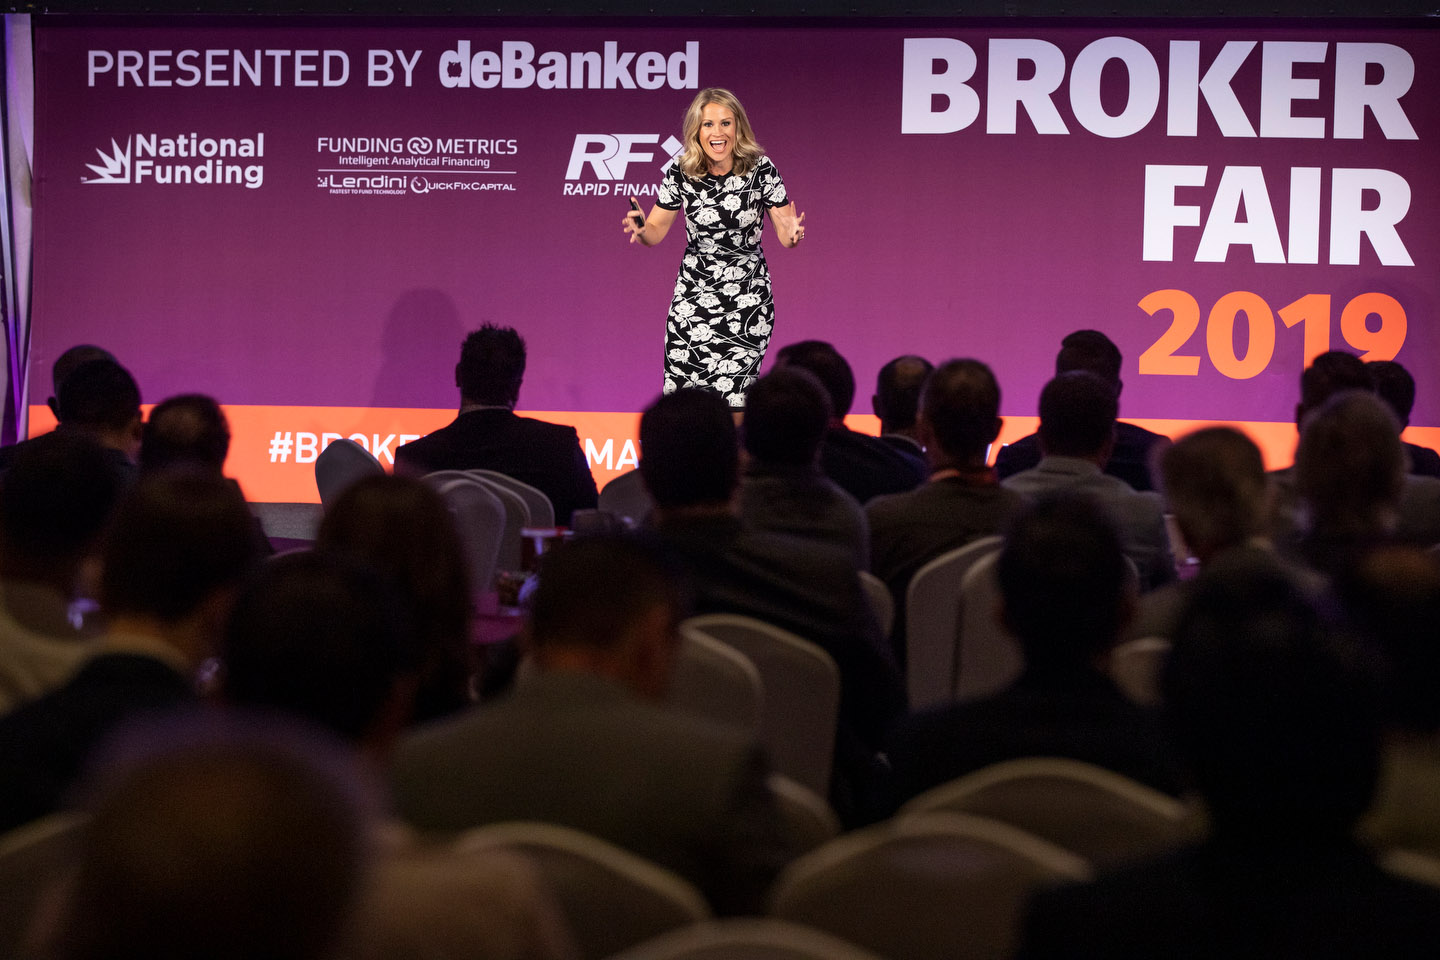 Broker Fair 2019 - Presented by deBanked - 377